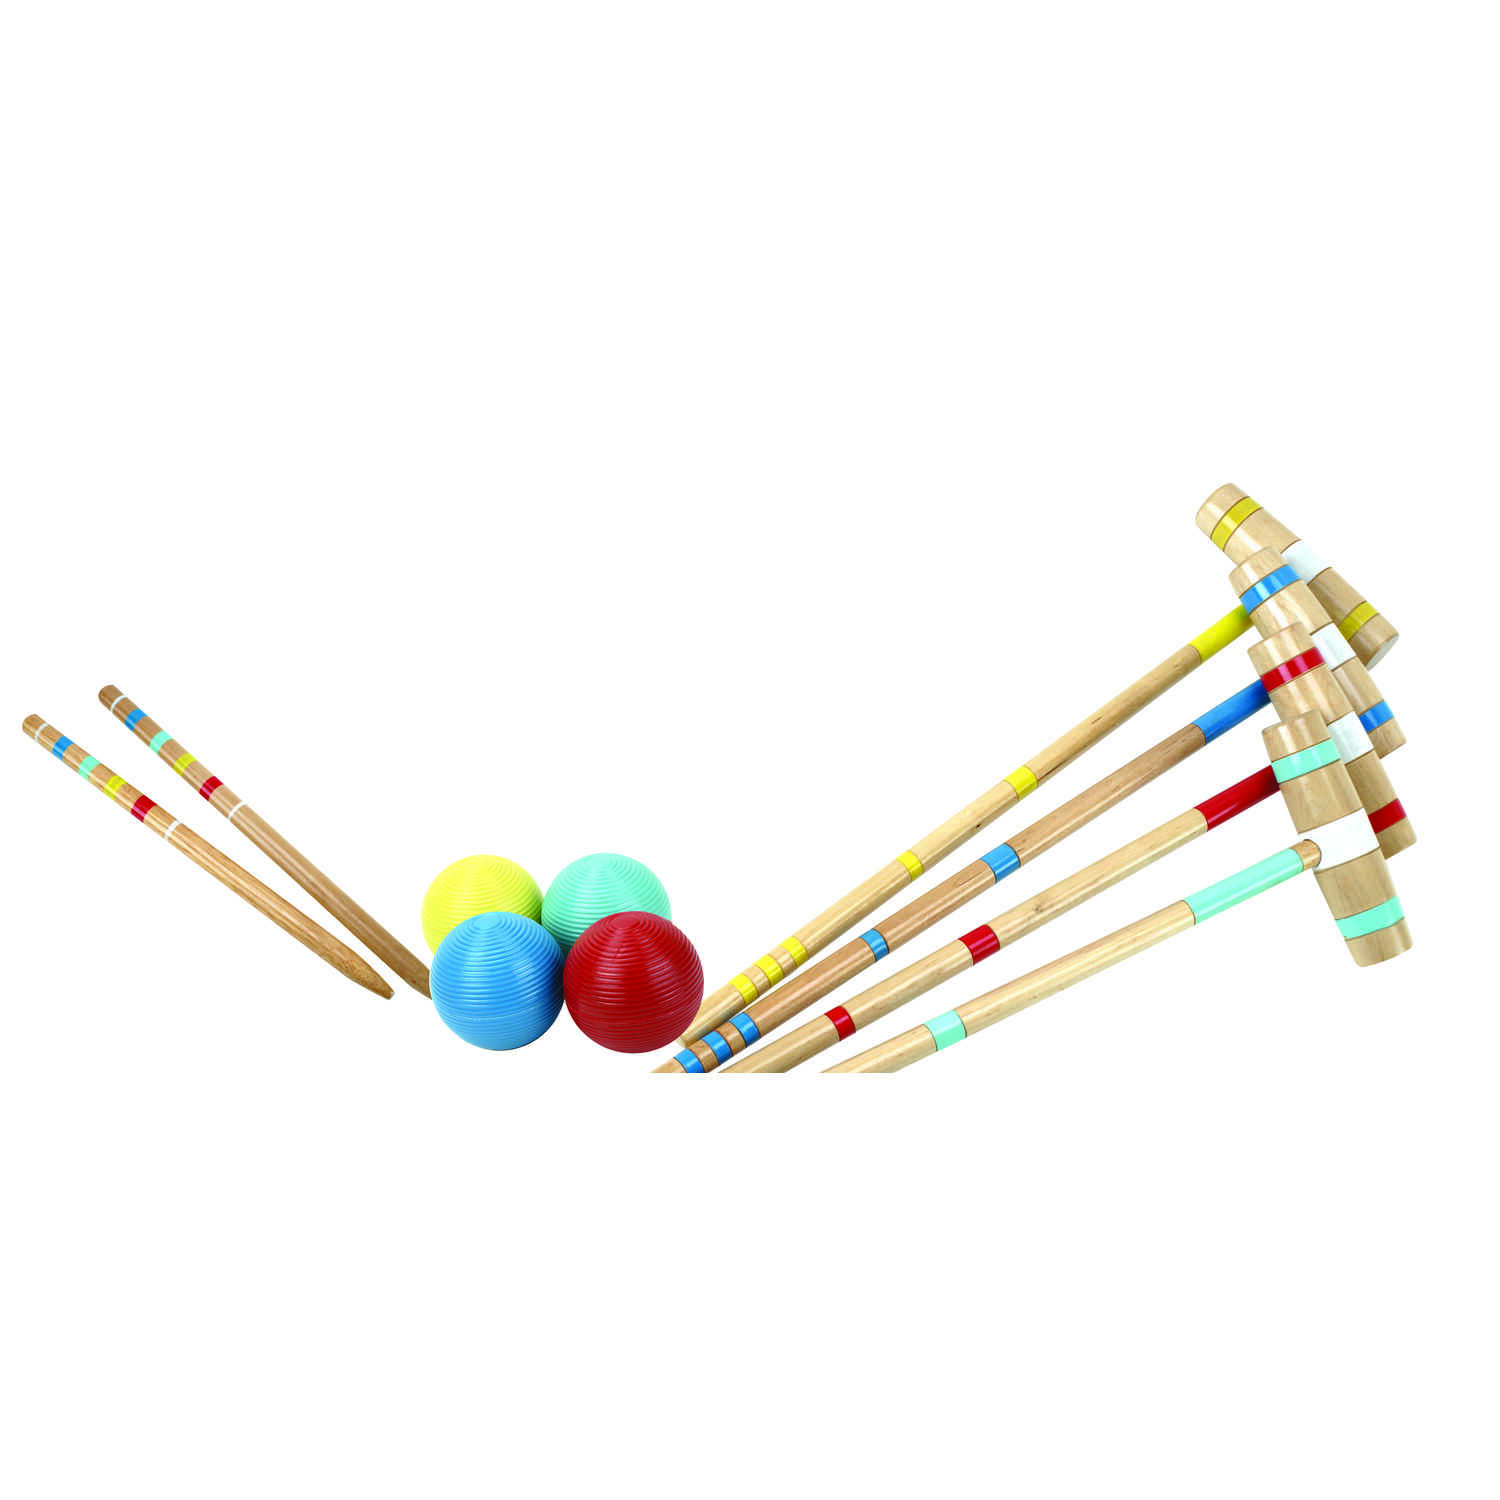 Halex  4 Player  Croquet Set  8 Years and up year